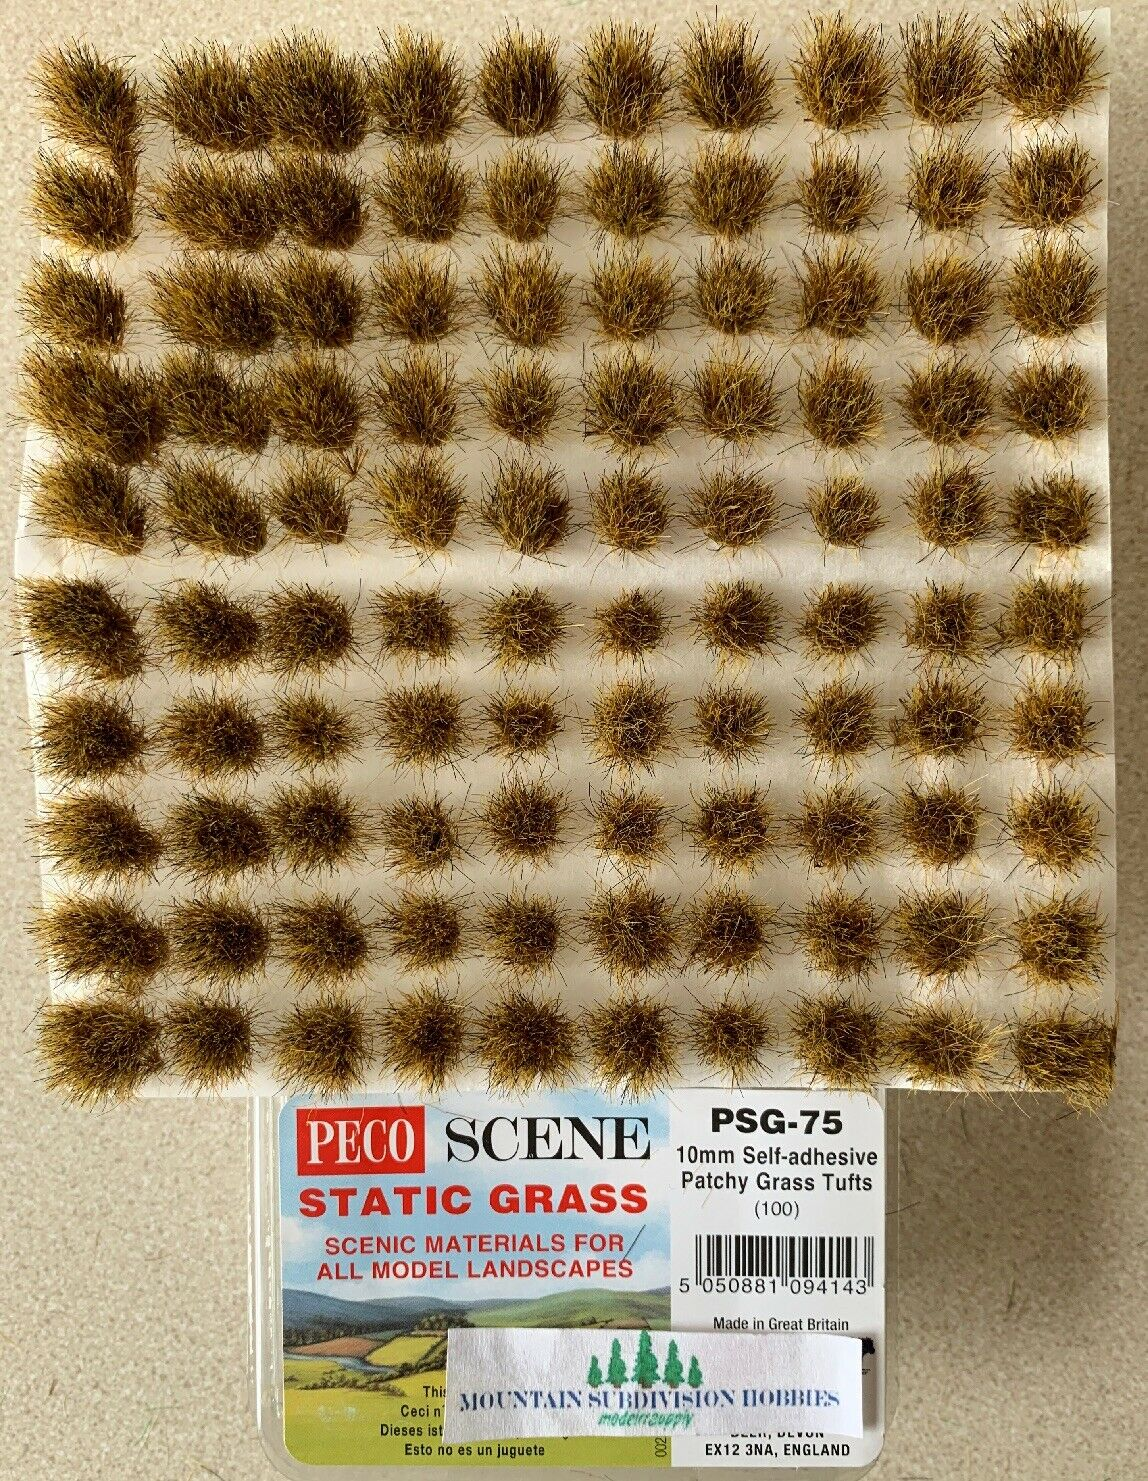 ground cover 100 Approx 10mm Patchy Grass Tufts - Peco PSG-75 F1